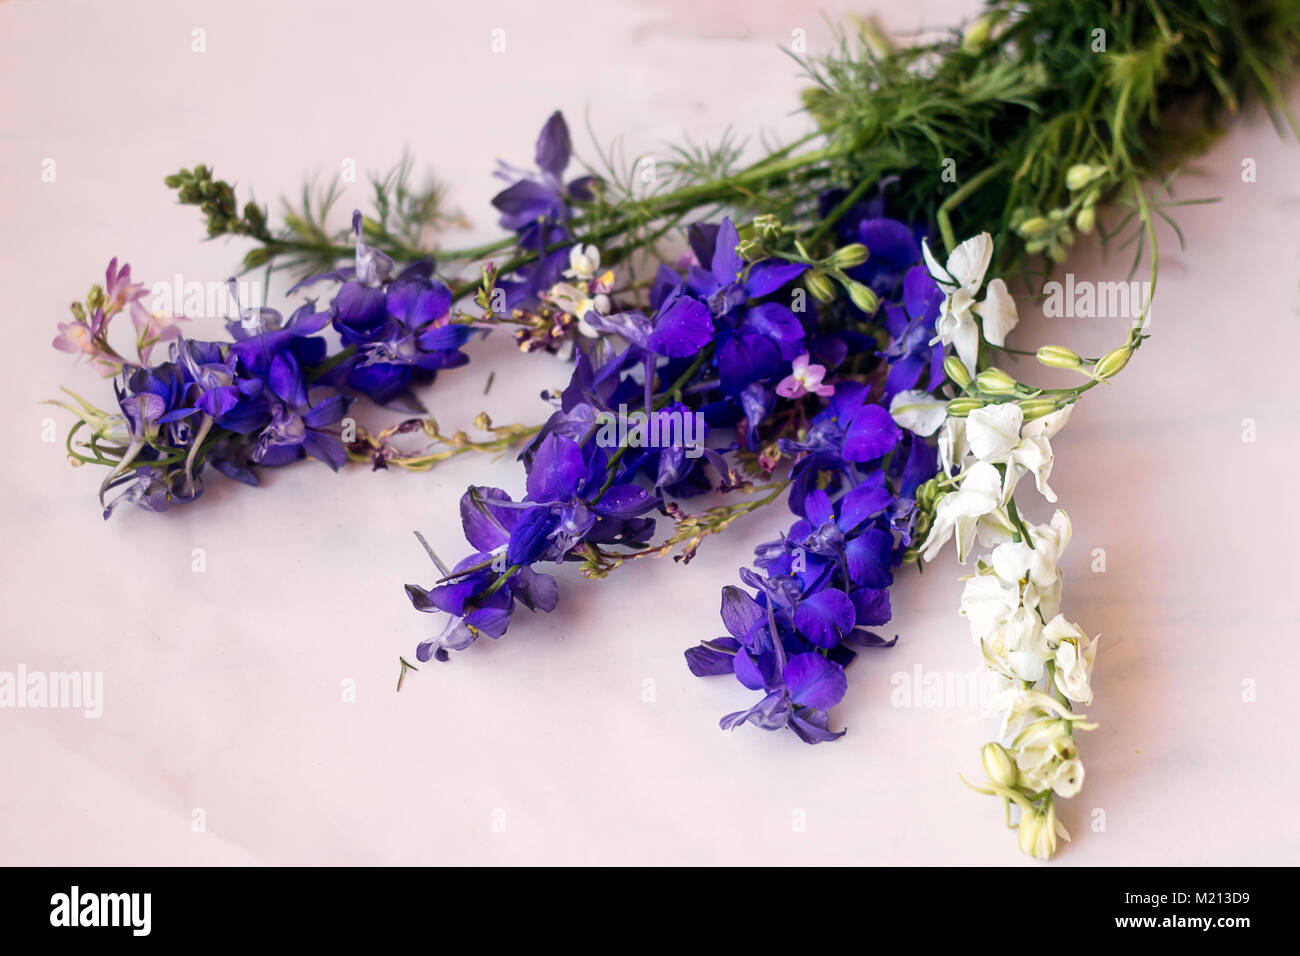 Mixed Flower Bouquet In Purple And White Stock Photo 173357669 Alamy